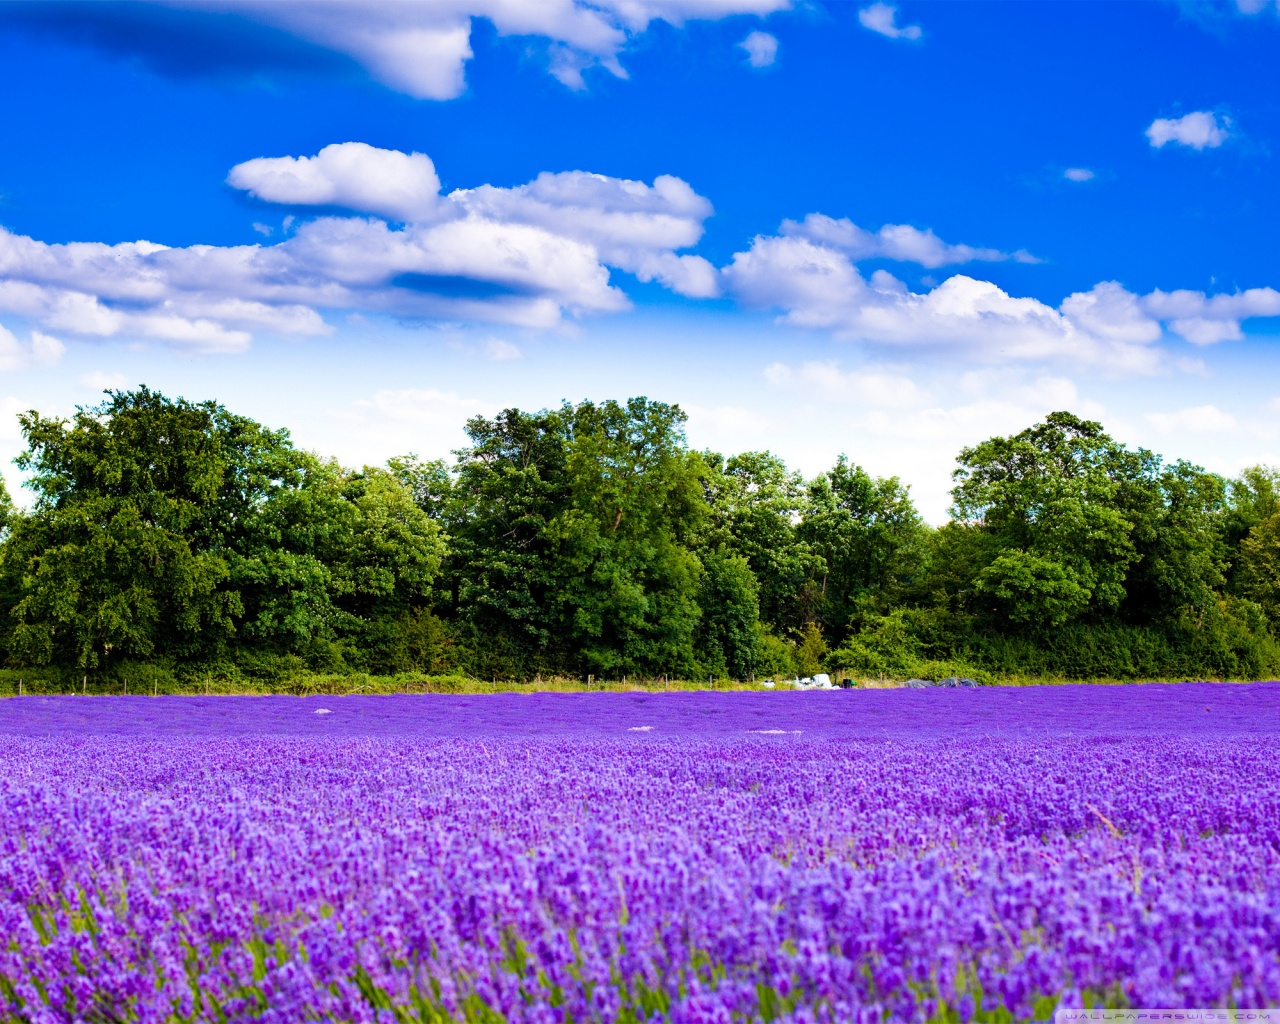 Free Wallpaper Hub: Lavender Field Wallpaper